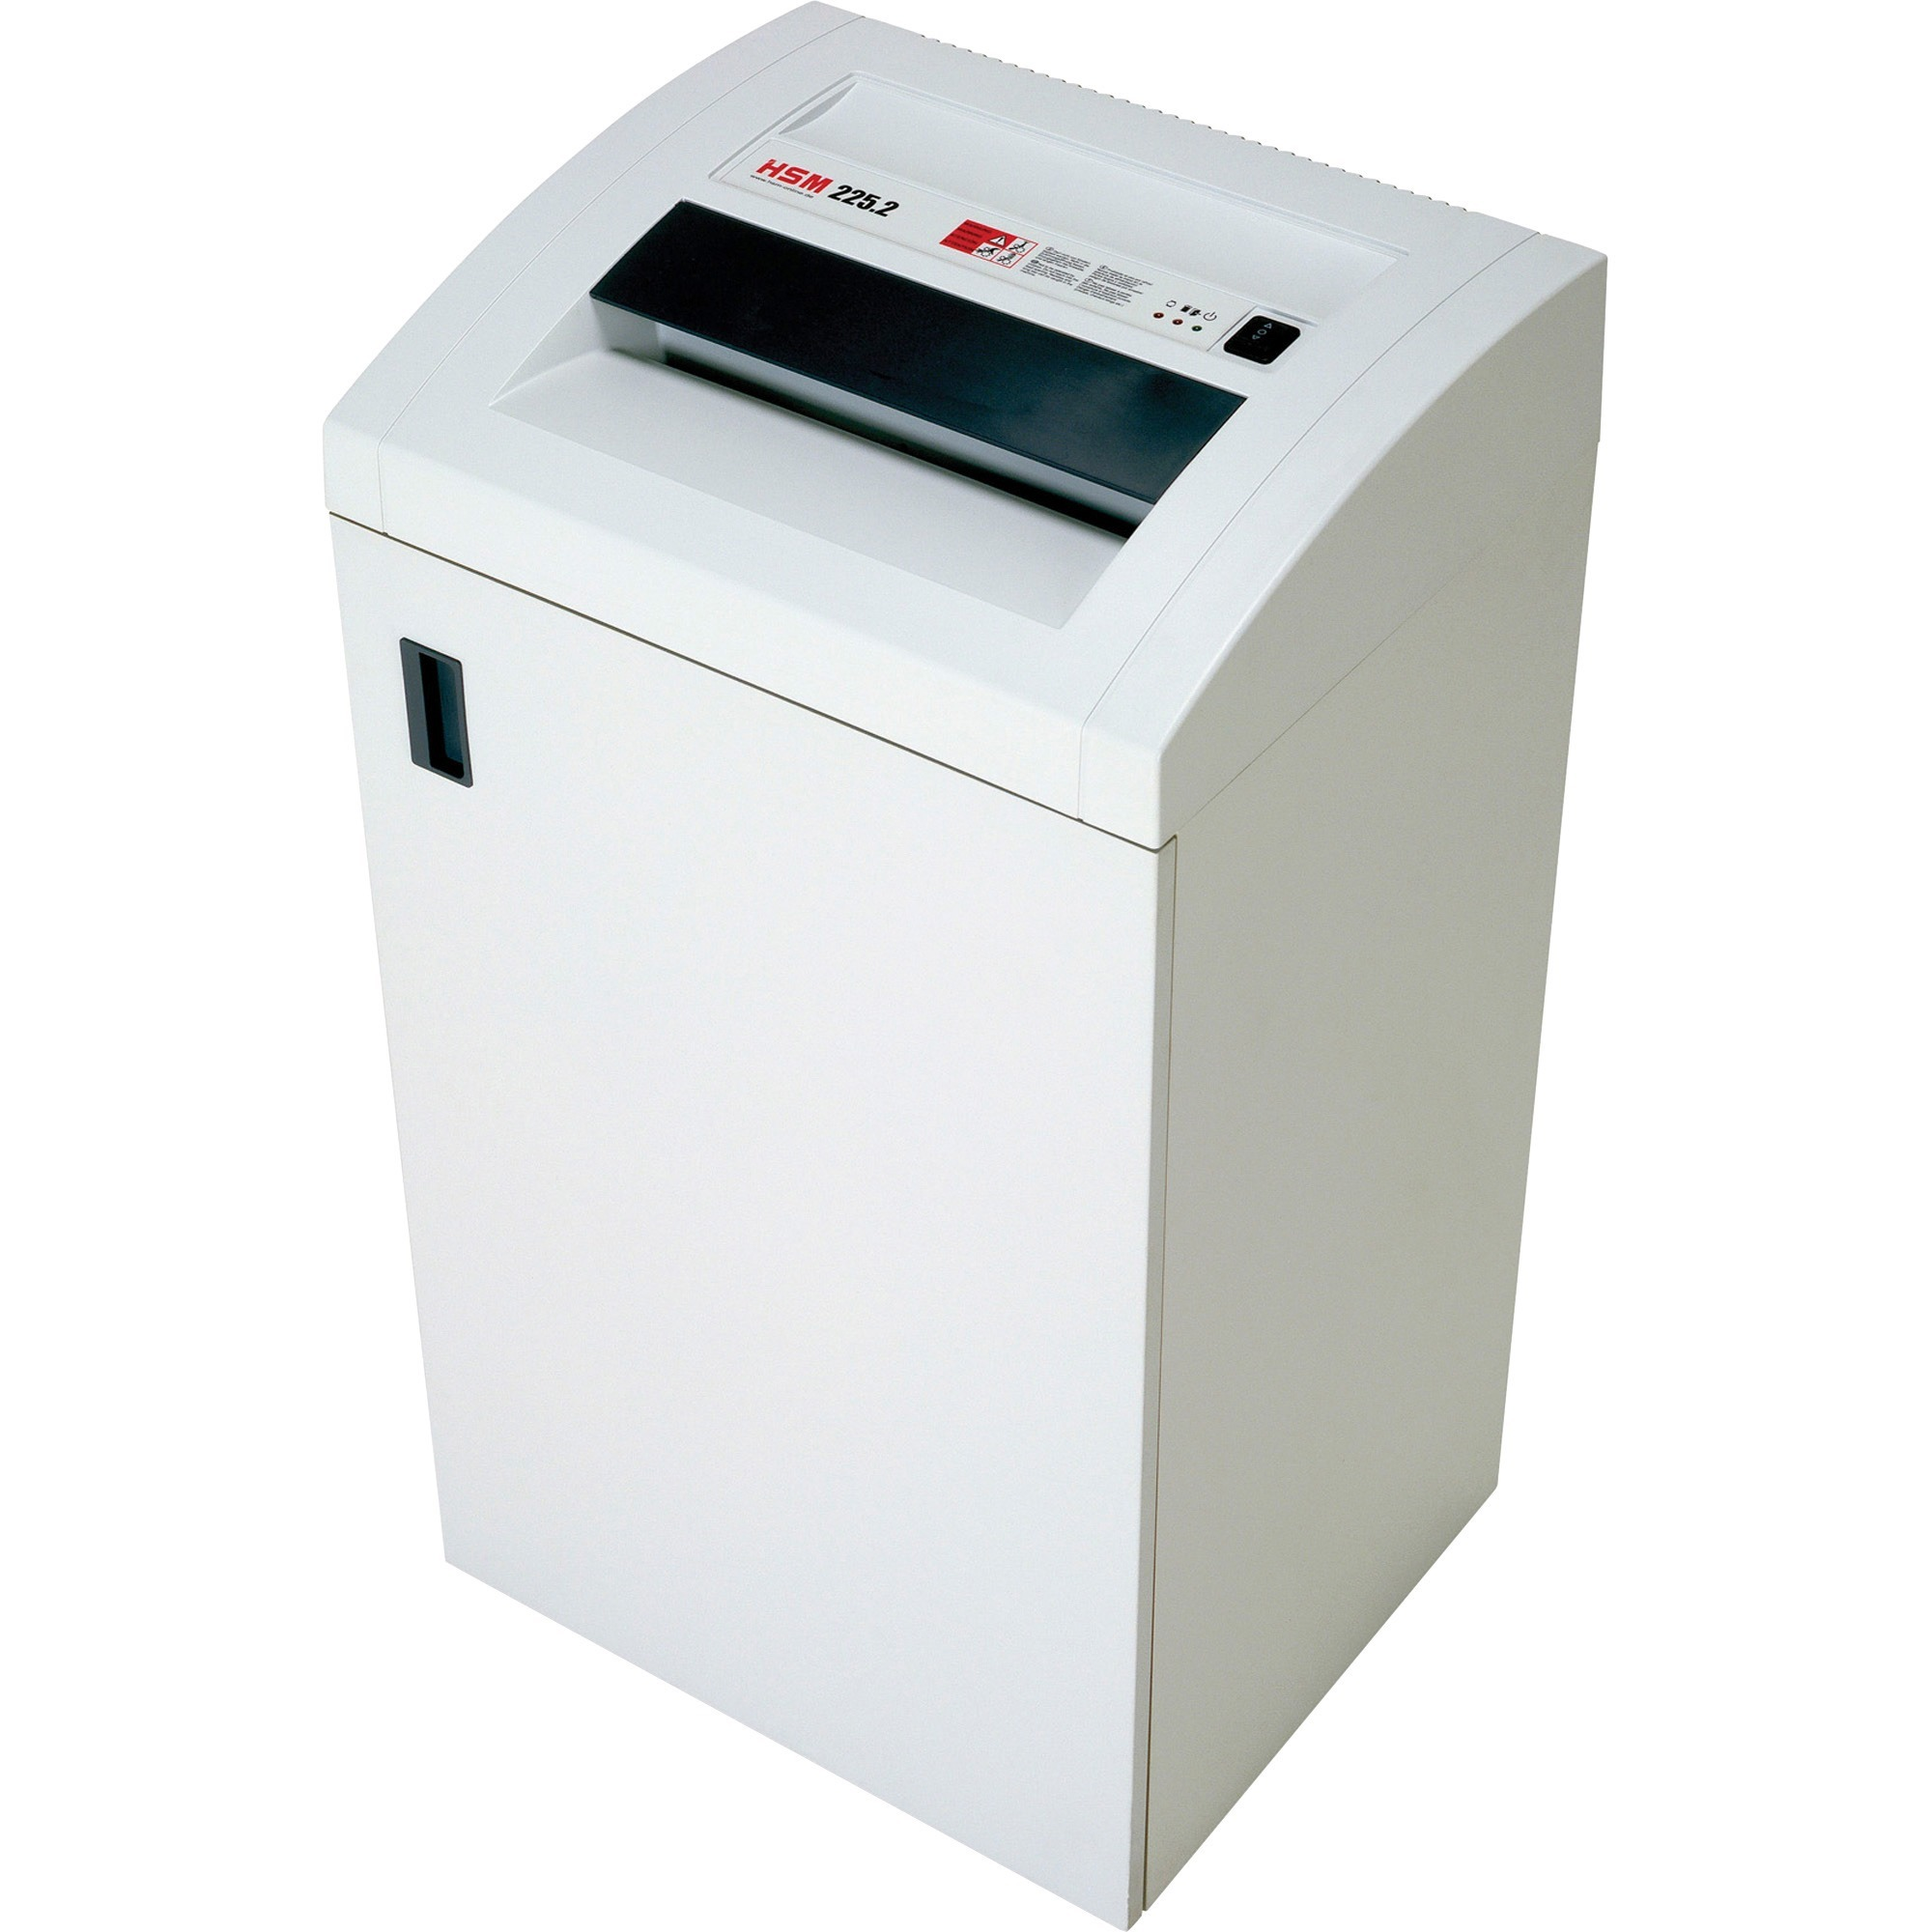 HSM Cross-cut Auto Oil Prof. Shredder